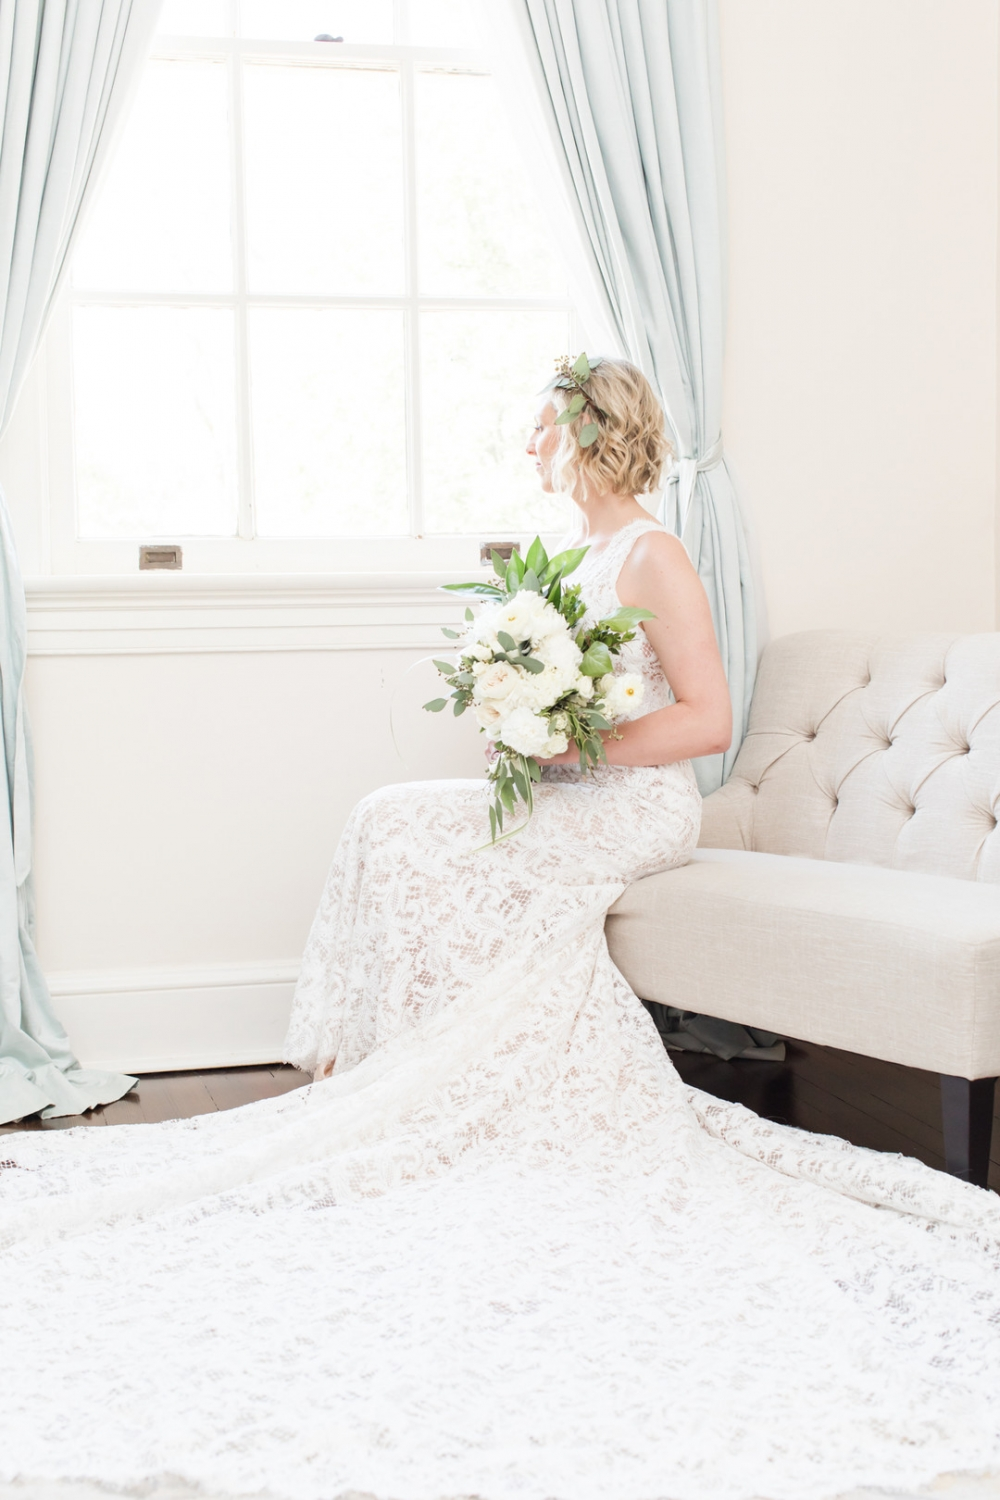 Bride sitting by window on a white couch